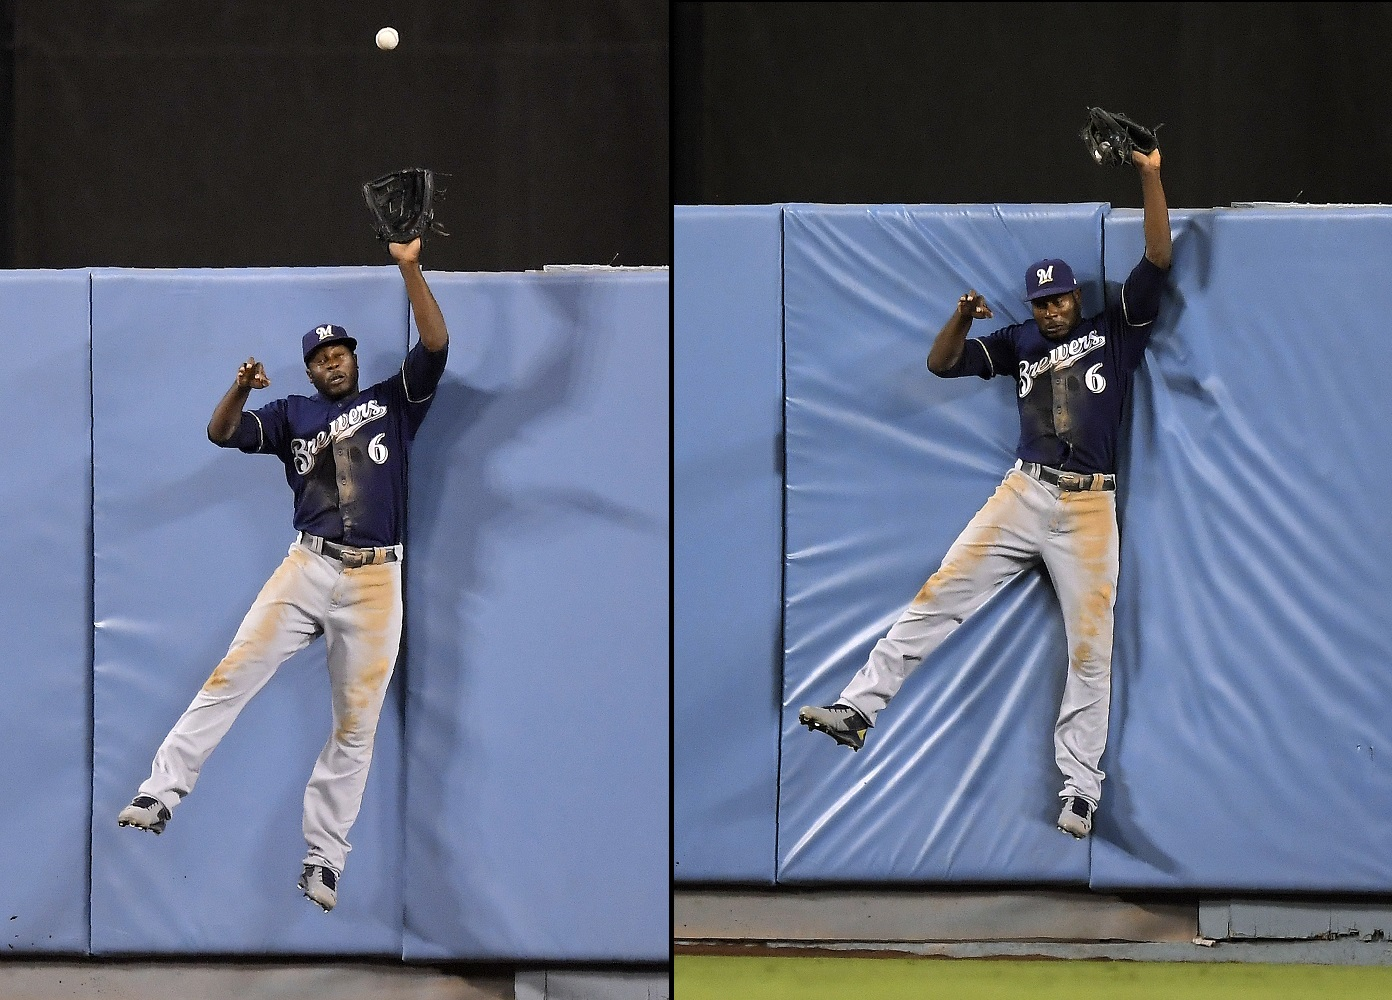 Cain saves day, robbing game-tying HR in 7th, as Brewers shuts down Dodgers